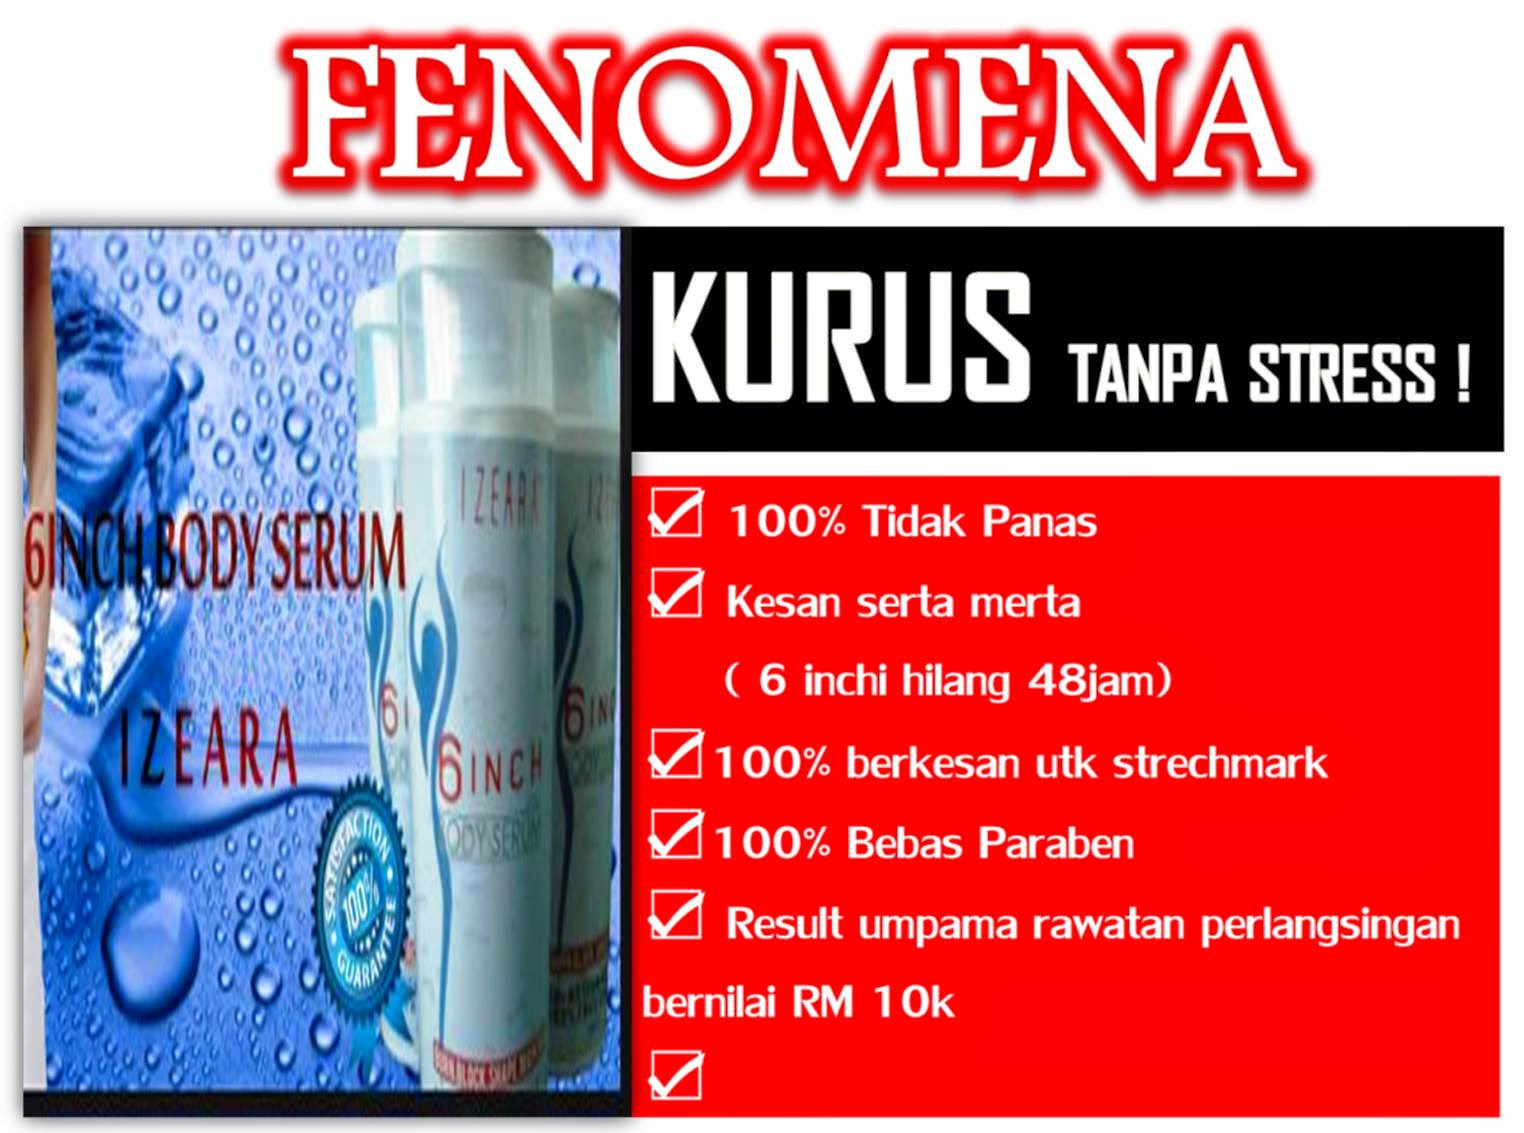 NA BEAUTY SHOPPE IZEARA 6INCH BODY SERUM RAHSIA ENOT KURUS